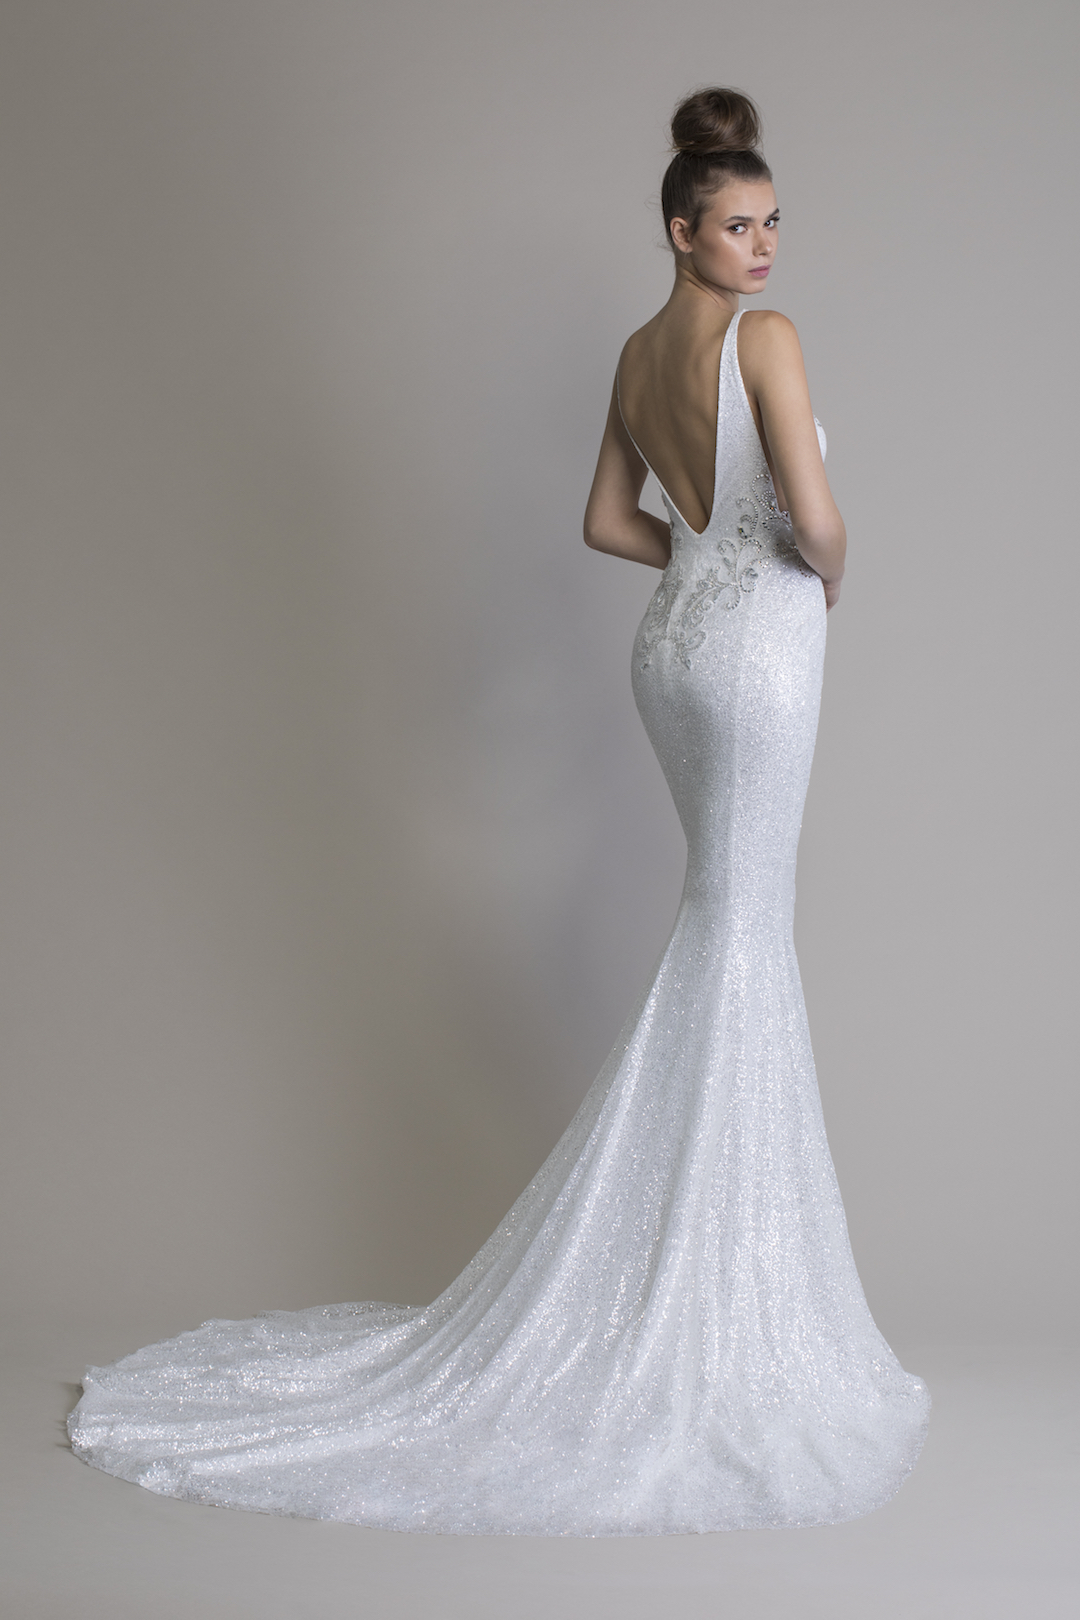 Pnina Tornai's new LOVE 2020 Collection is out! This is style 14774